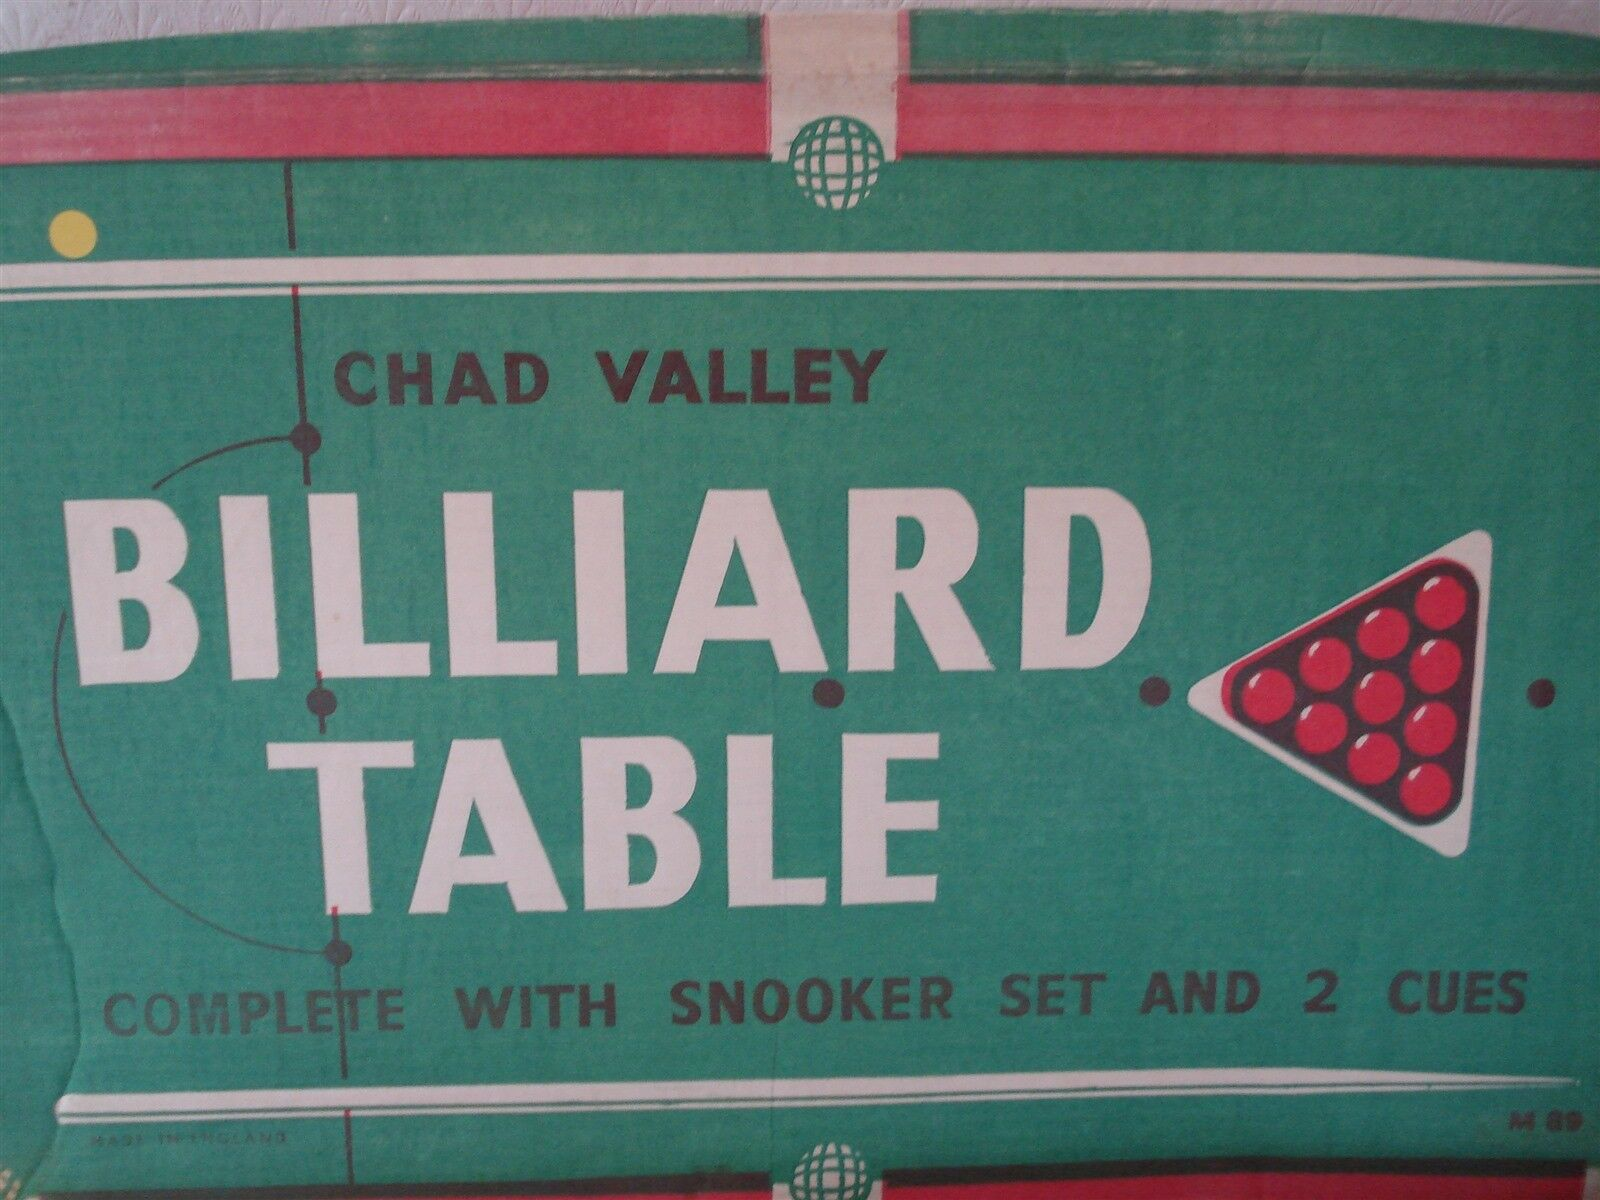 CHAD VALLEY SNOOKER GAME - BILLIARD TABLE - SNOOKER GAME - CHAD VALLEY - SNOOKER